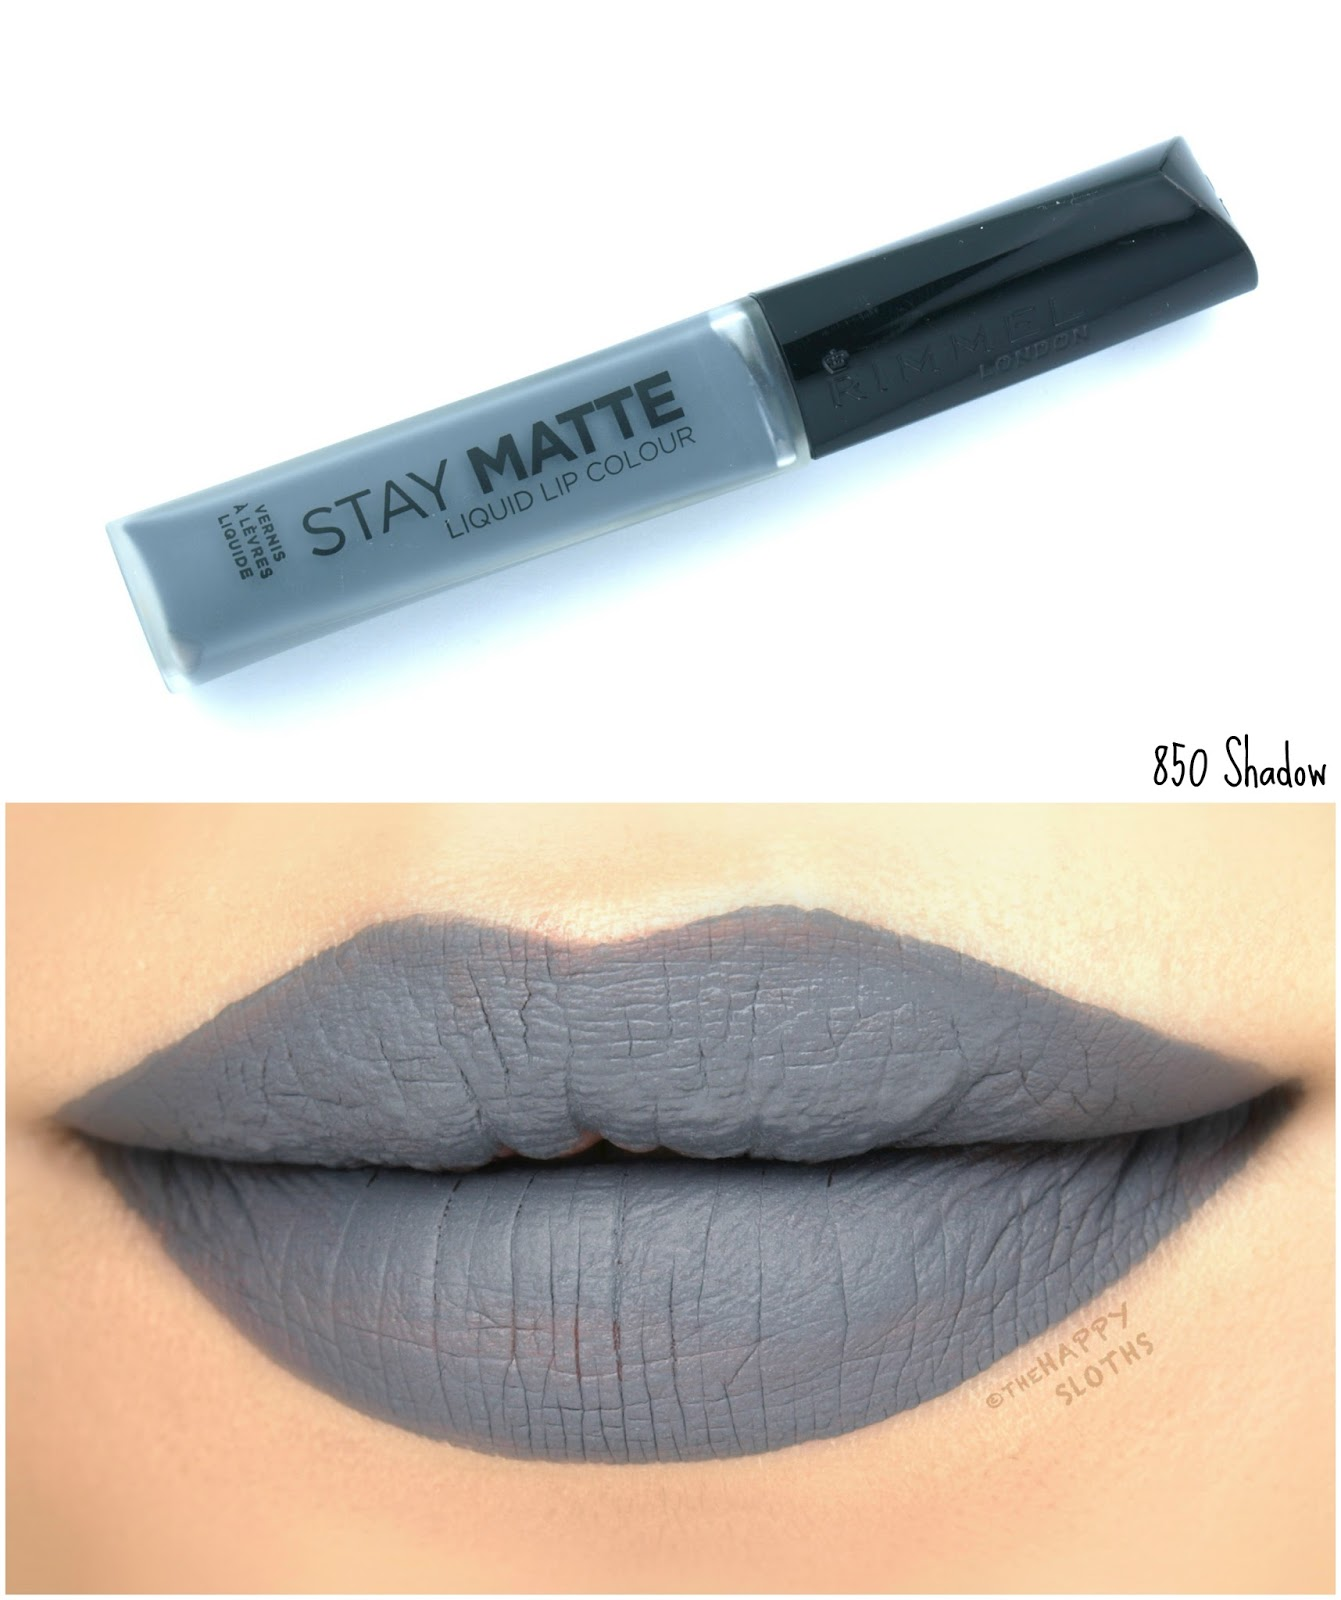 Rimmel London Stay Matte Liquid Lip Colour | 850 Shadow: Review and Swatches